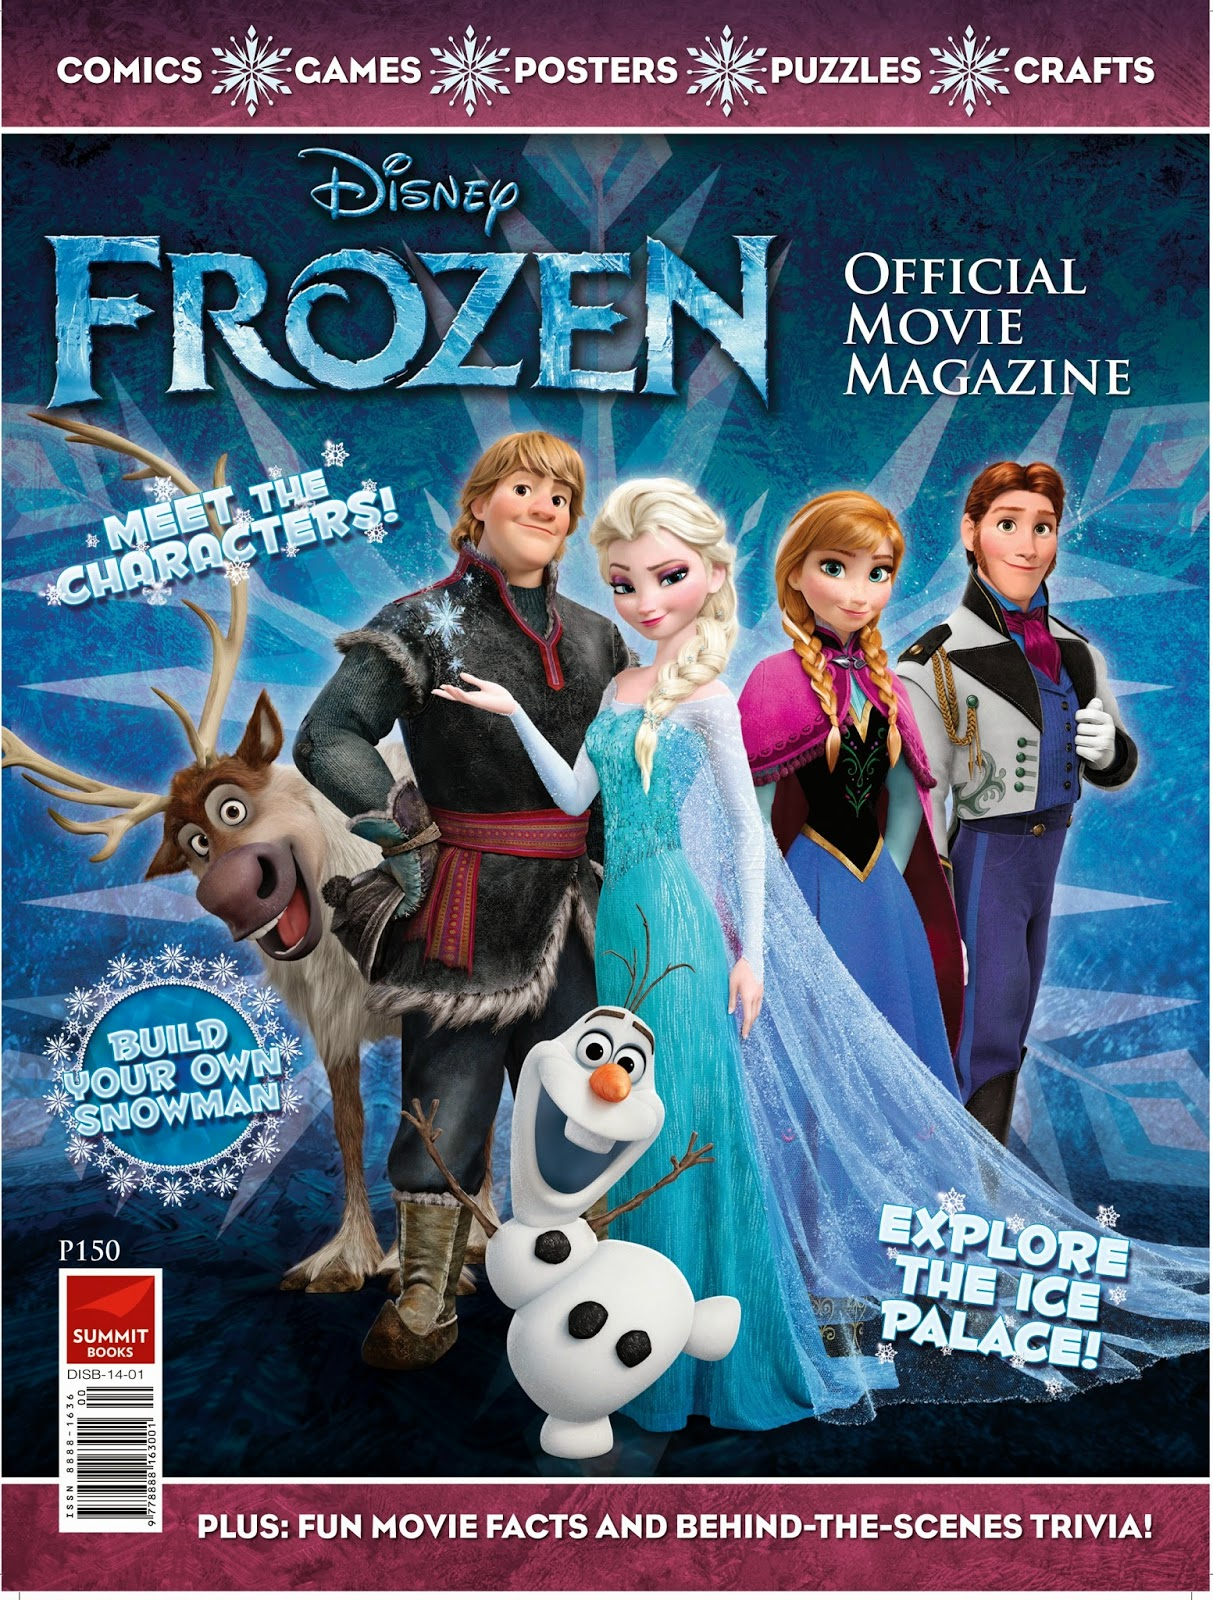 Disney s frozen official movie magazine is now in the philippines